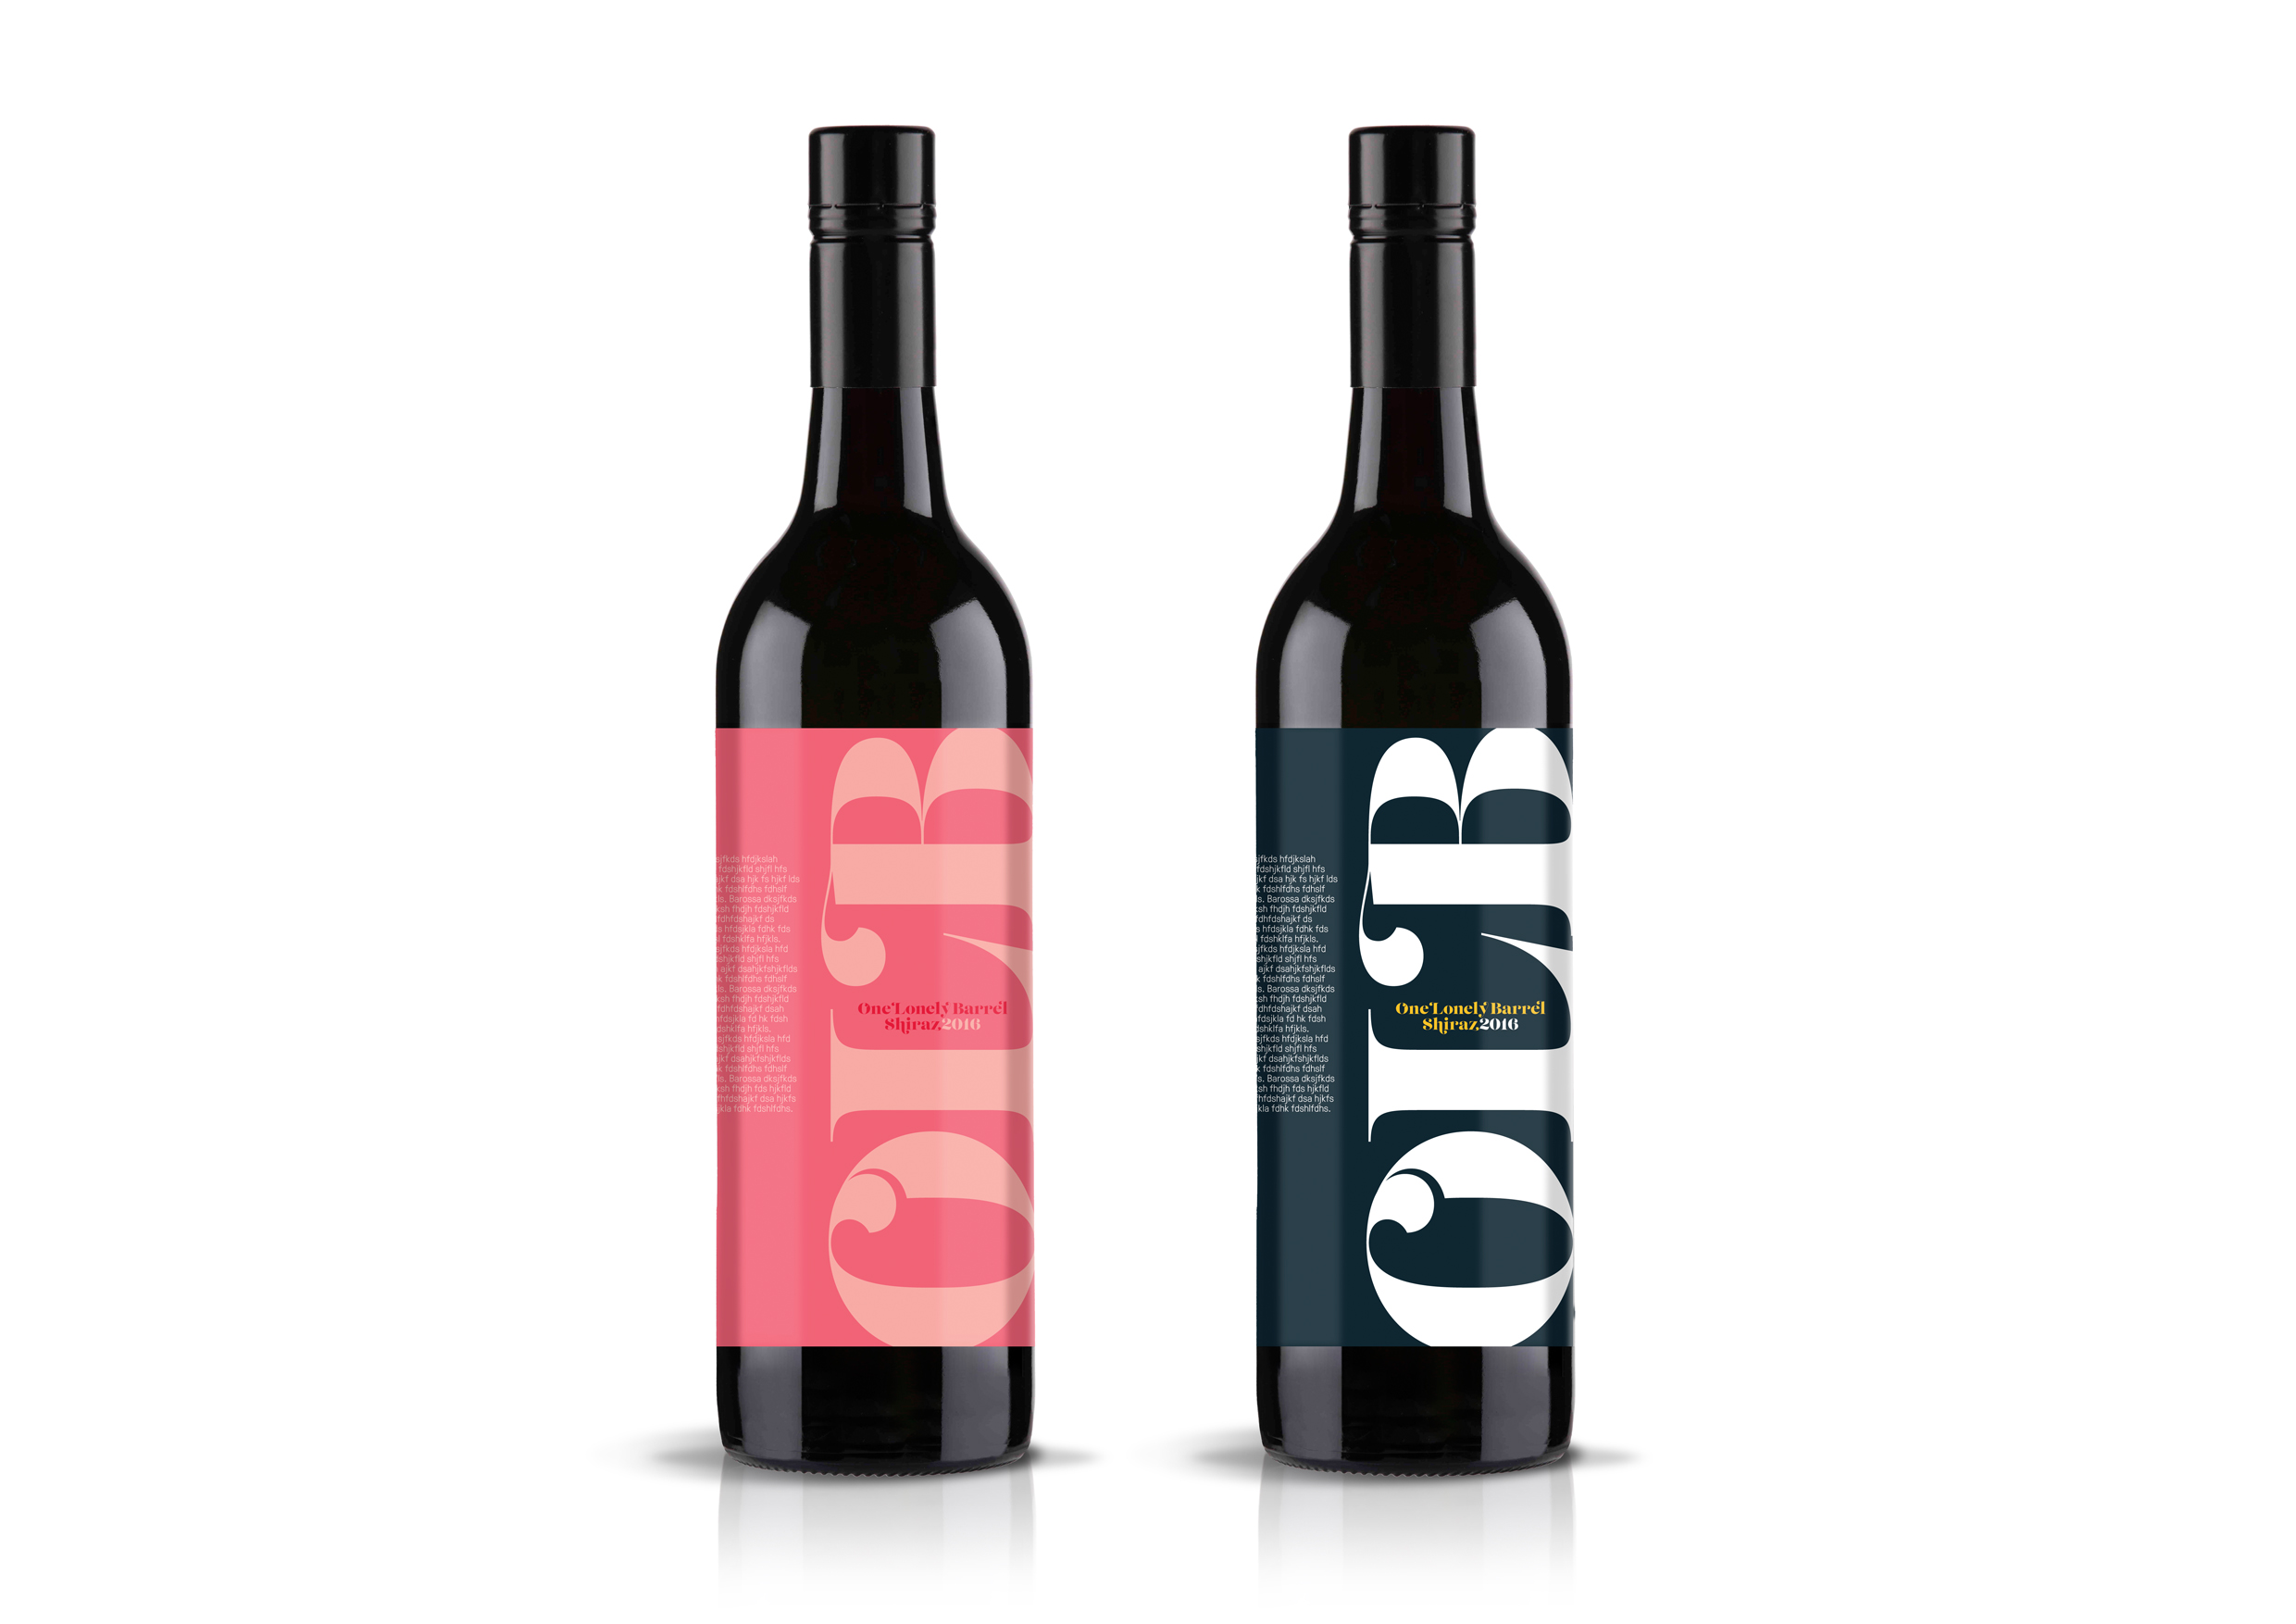 One Lonely Barrel, Graphic design, Wine Labels, Concepts, Adelaide, Wine, packaging